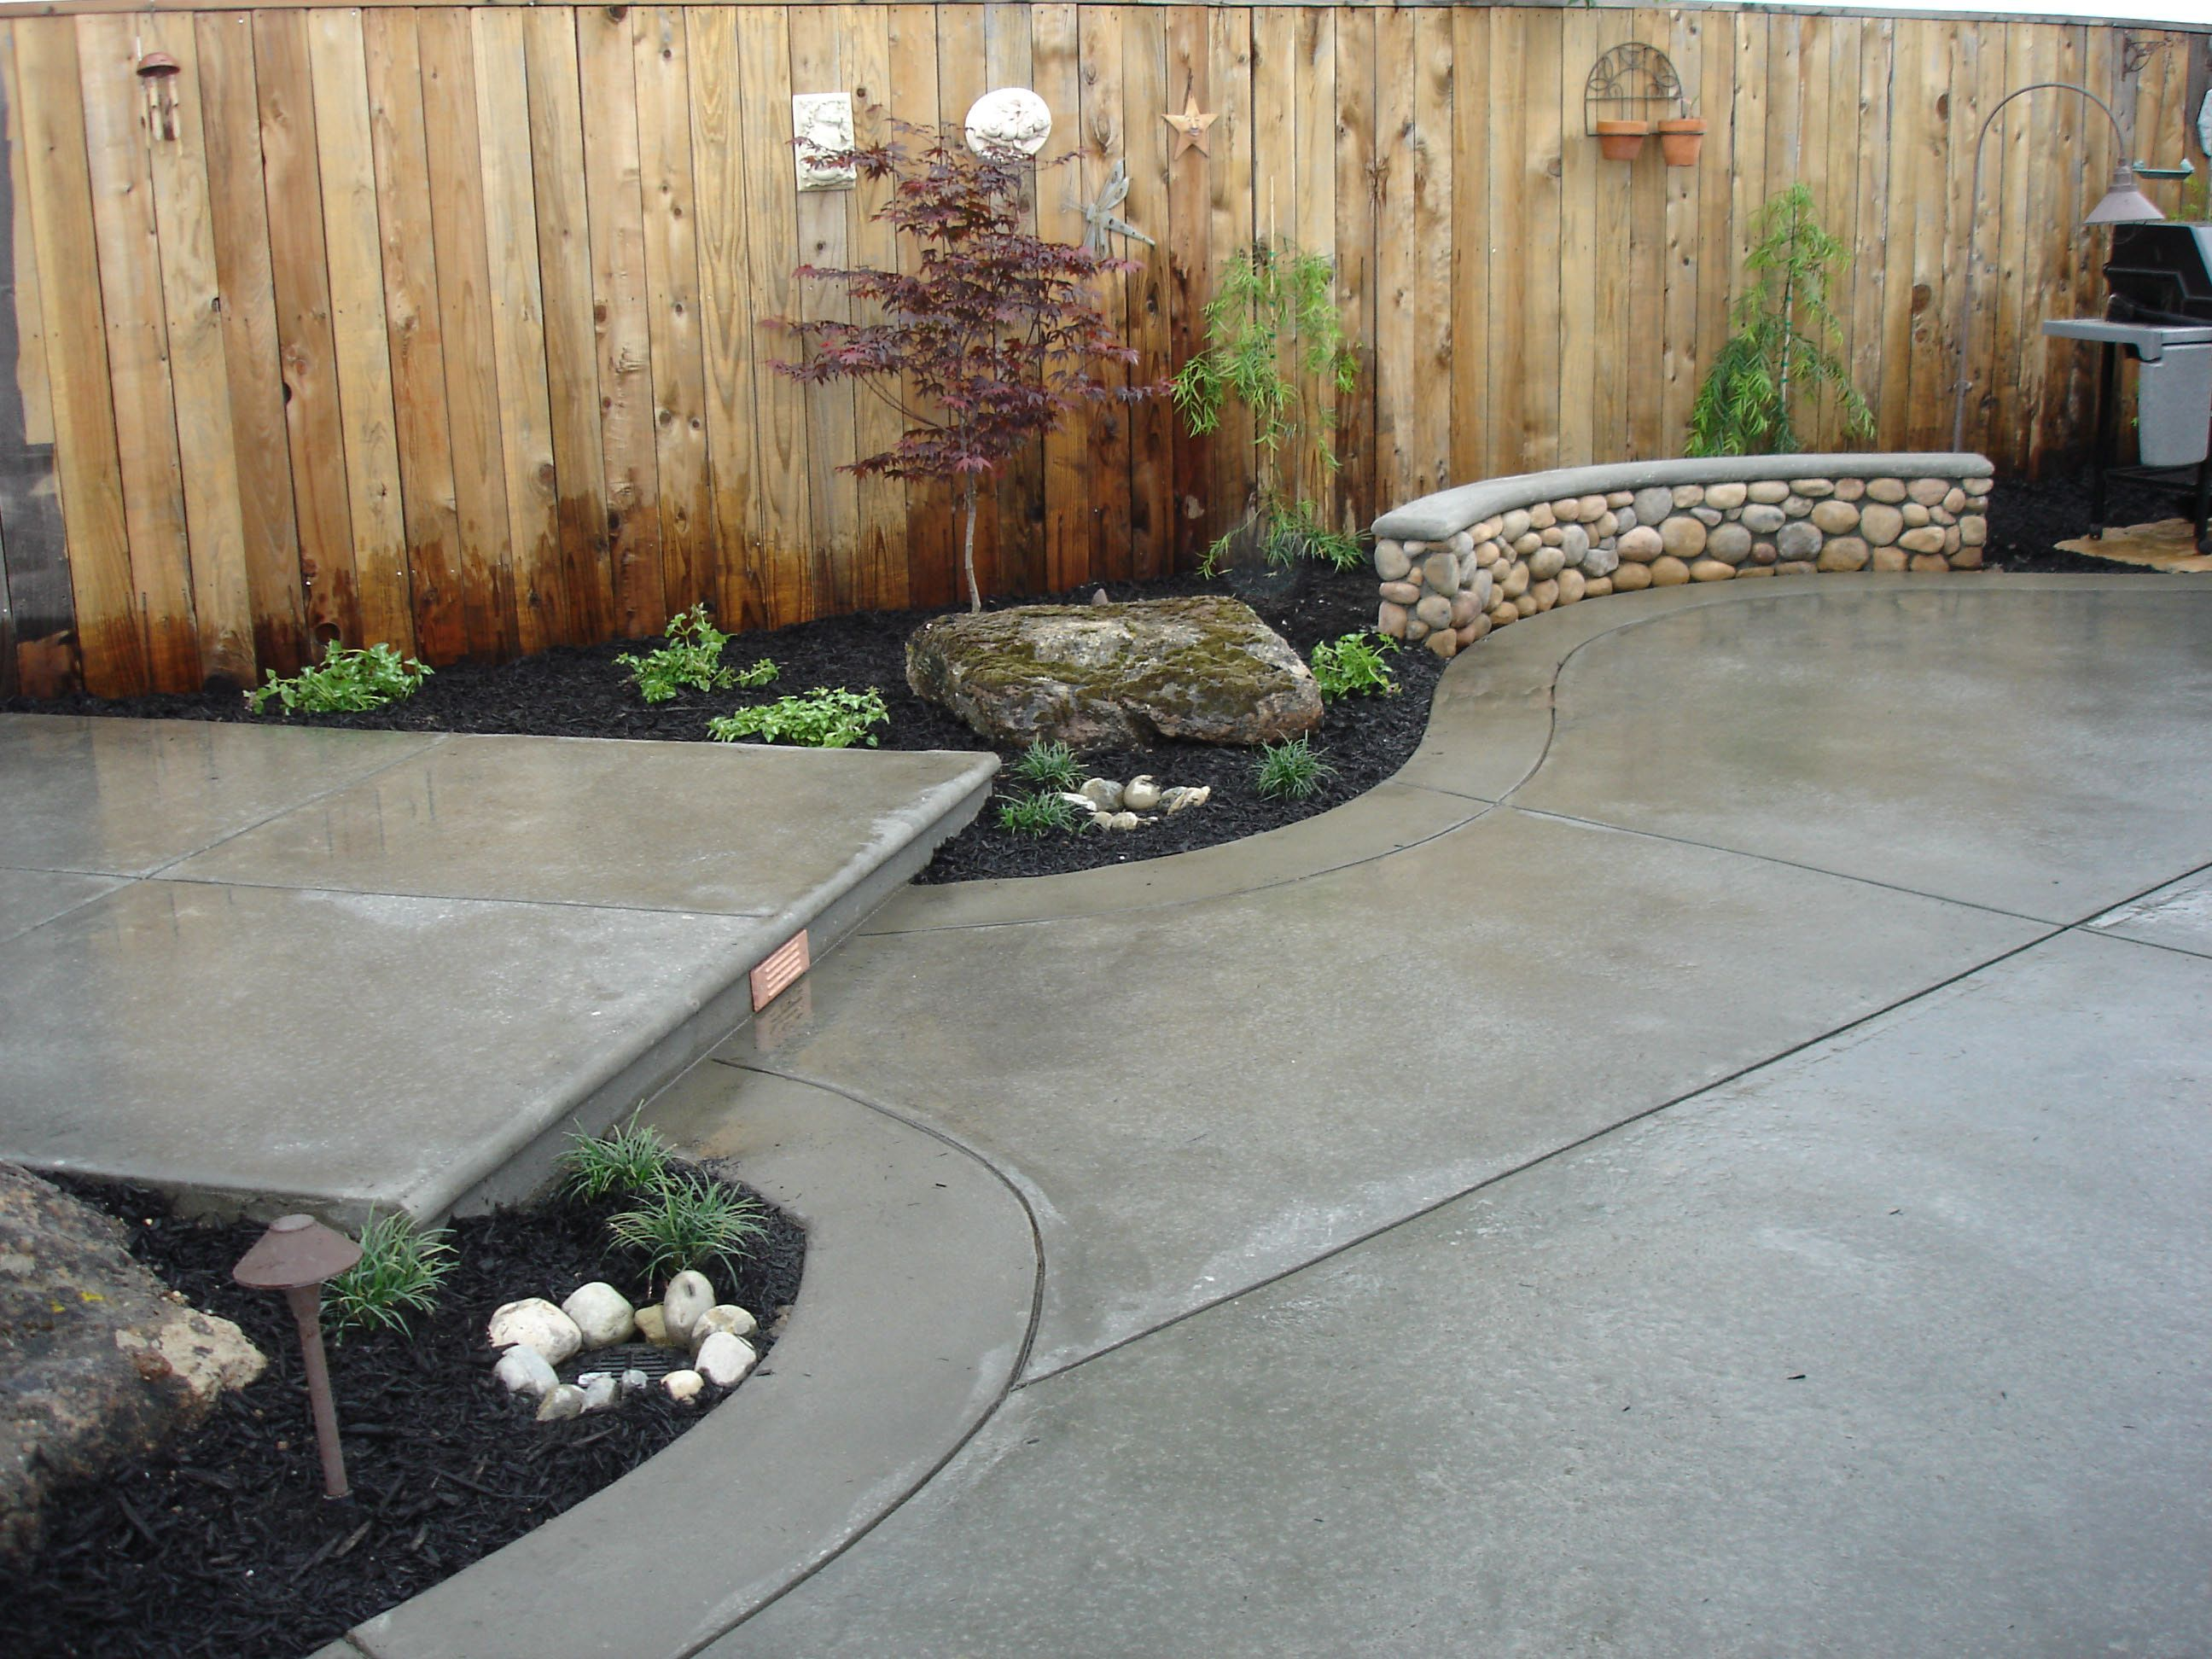 Elegant Concrete Finishes For Patios And Walkways Broom Finish Concrete ... More  More